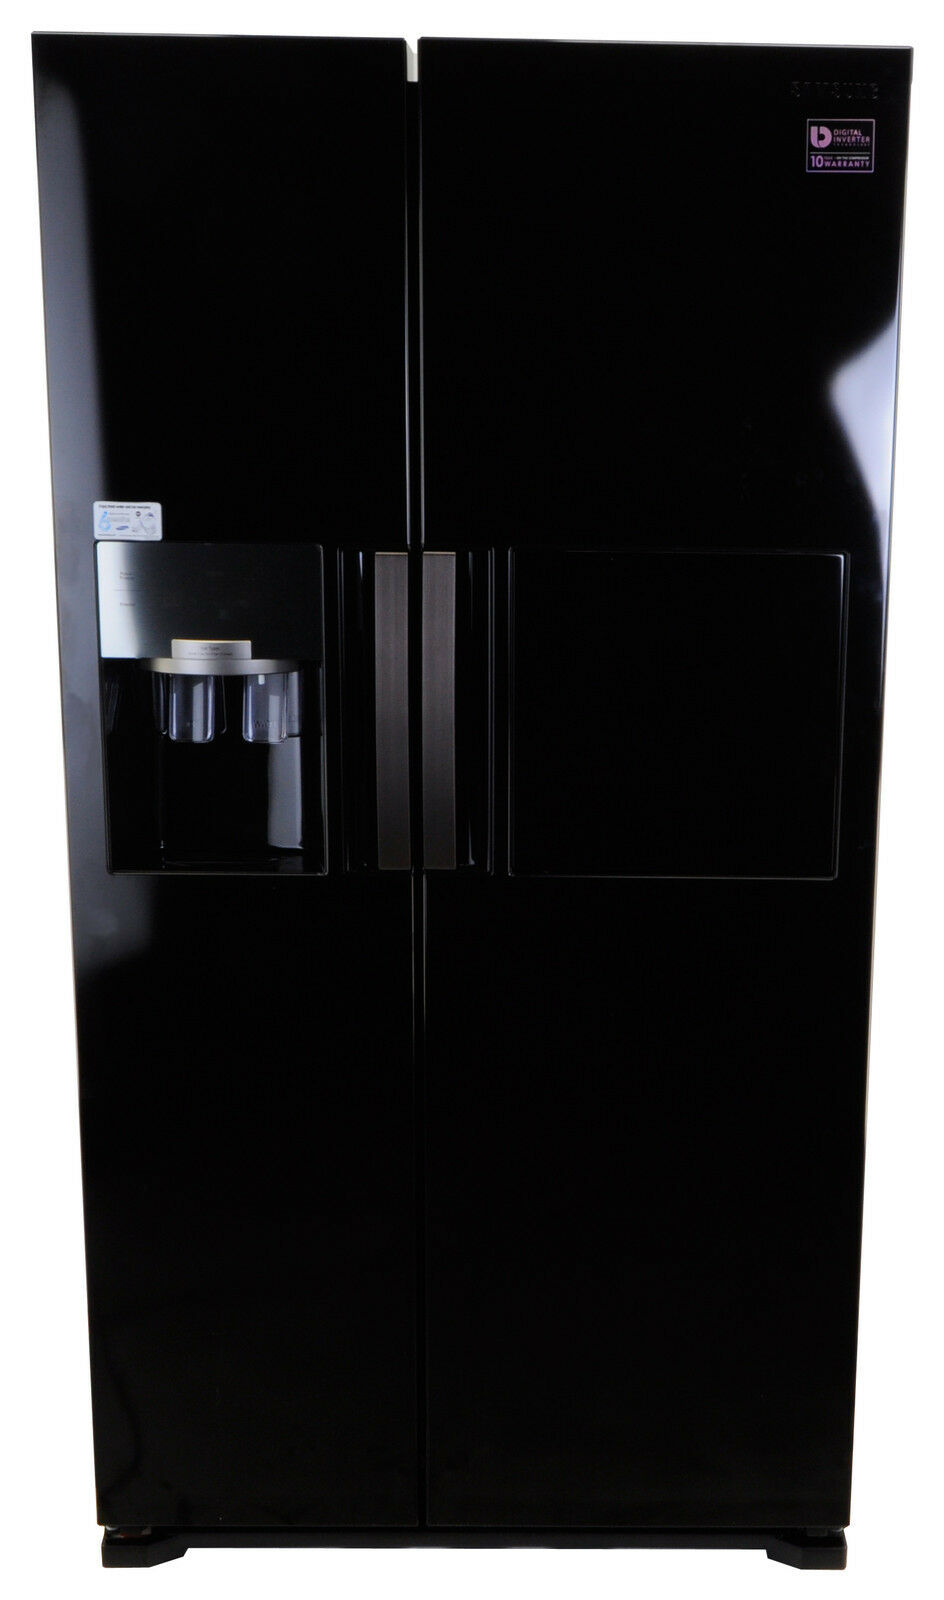 samsung rs7778fhcbc schwarz k hl gefrierkombination a. Black Bedroom Furniture Sets. Home Design Ideas